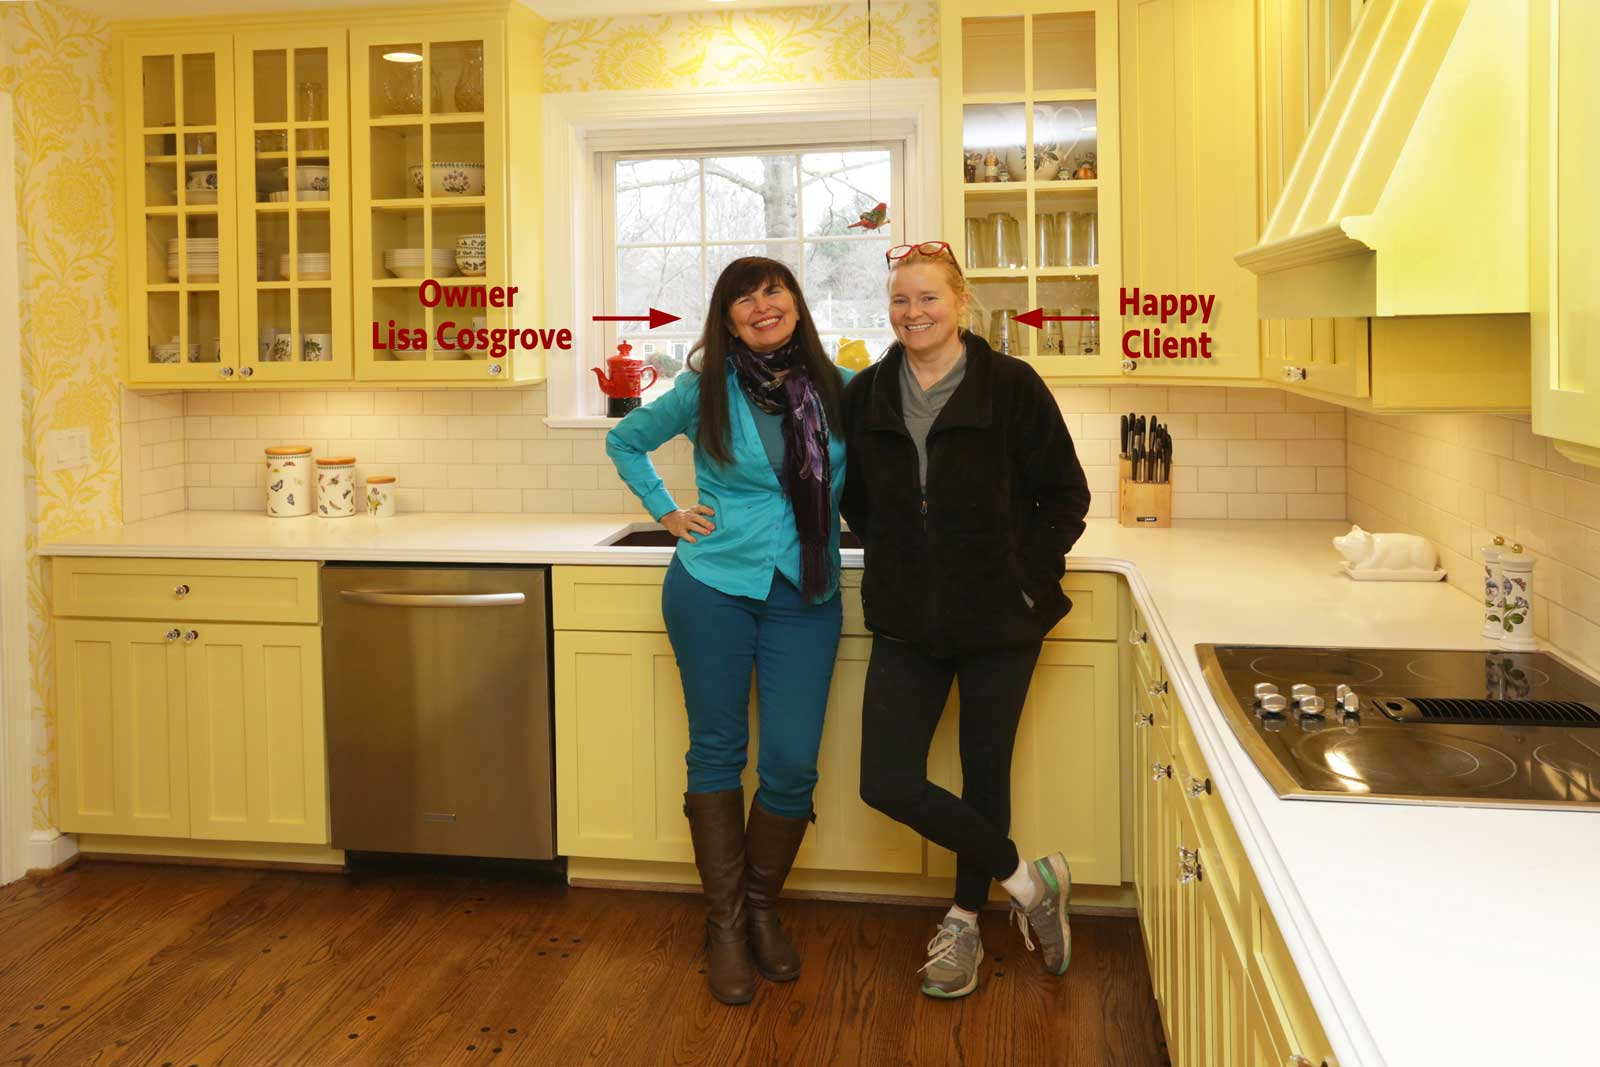 Lisa Cosgrove and a Client